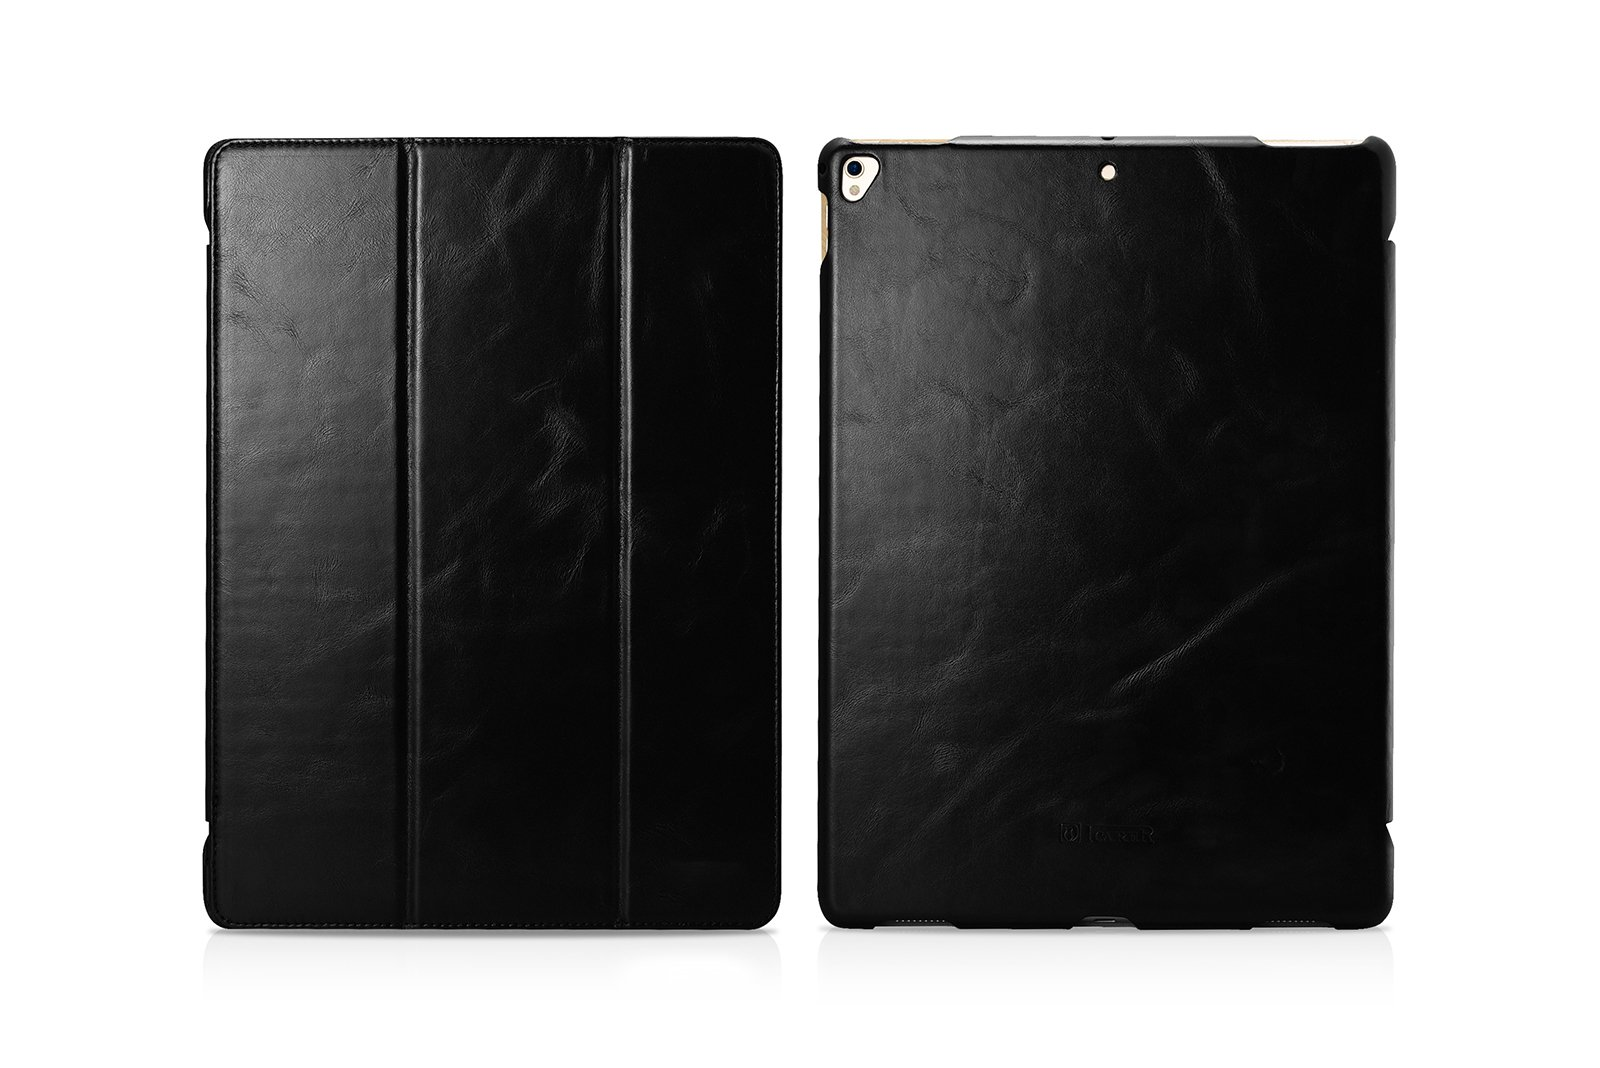 Pad Pro Leather Case, Icarercase Vintage Genuine Leather Side Open Flip Folio Style Smart Cover in Ultra Slim Design with Stand & Auto Wake/Sleep Functions for 12.9-inch iPad Pro 2017 (Black)